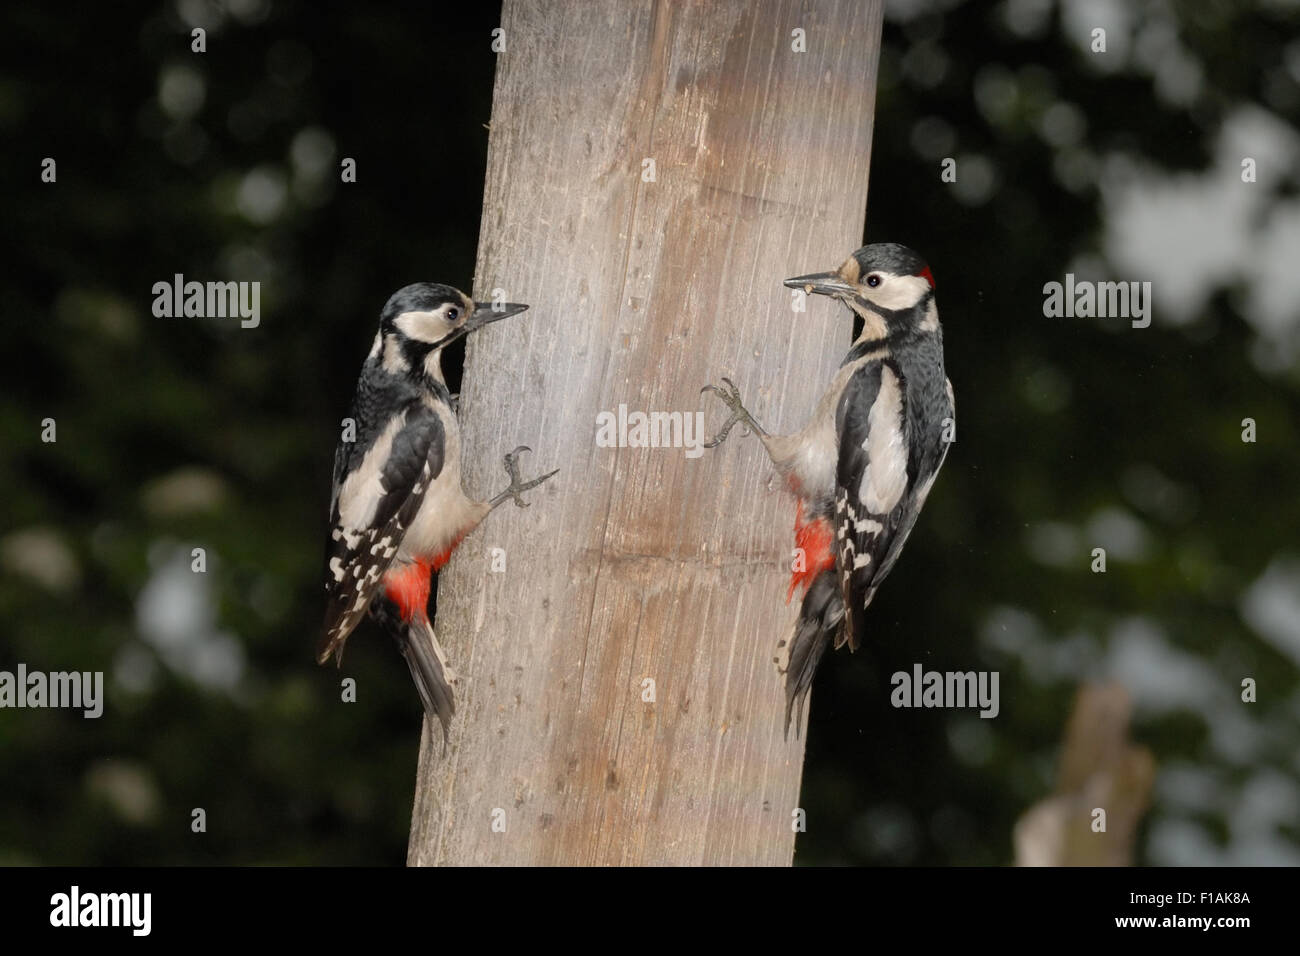 Male and female Great Spotted Woodpeckers vis-a-vis on the column - Stock Image